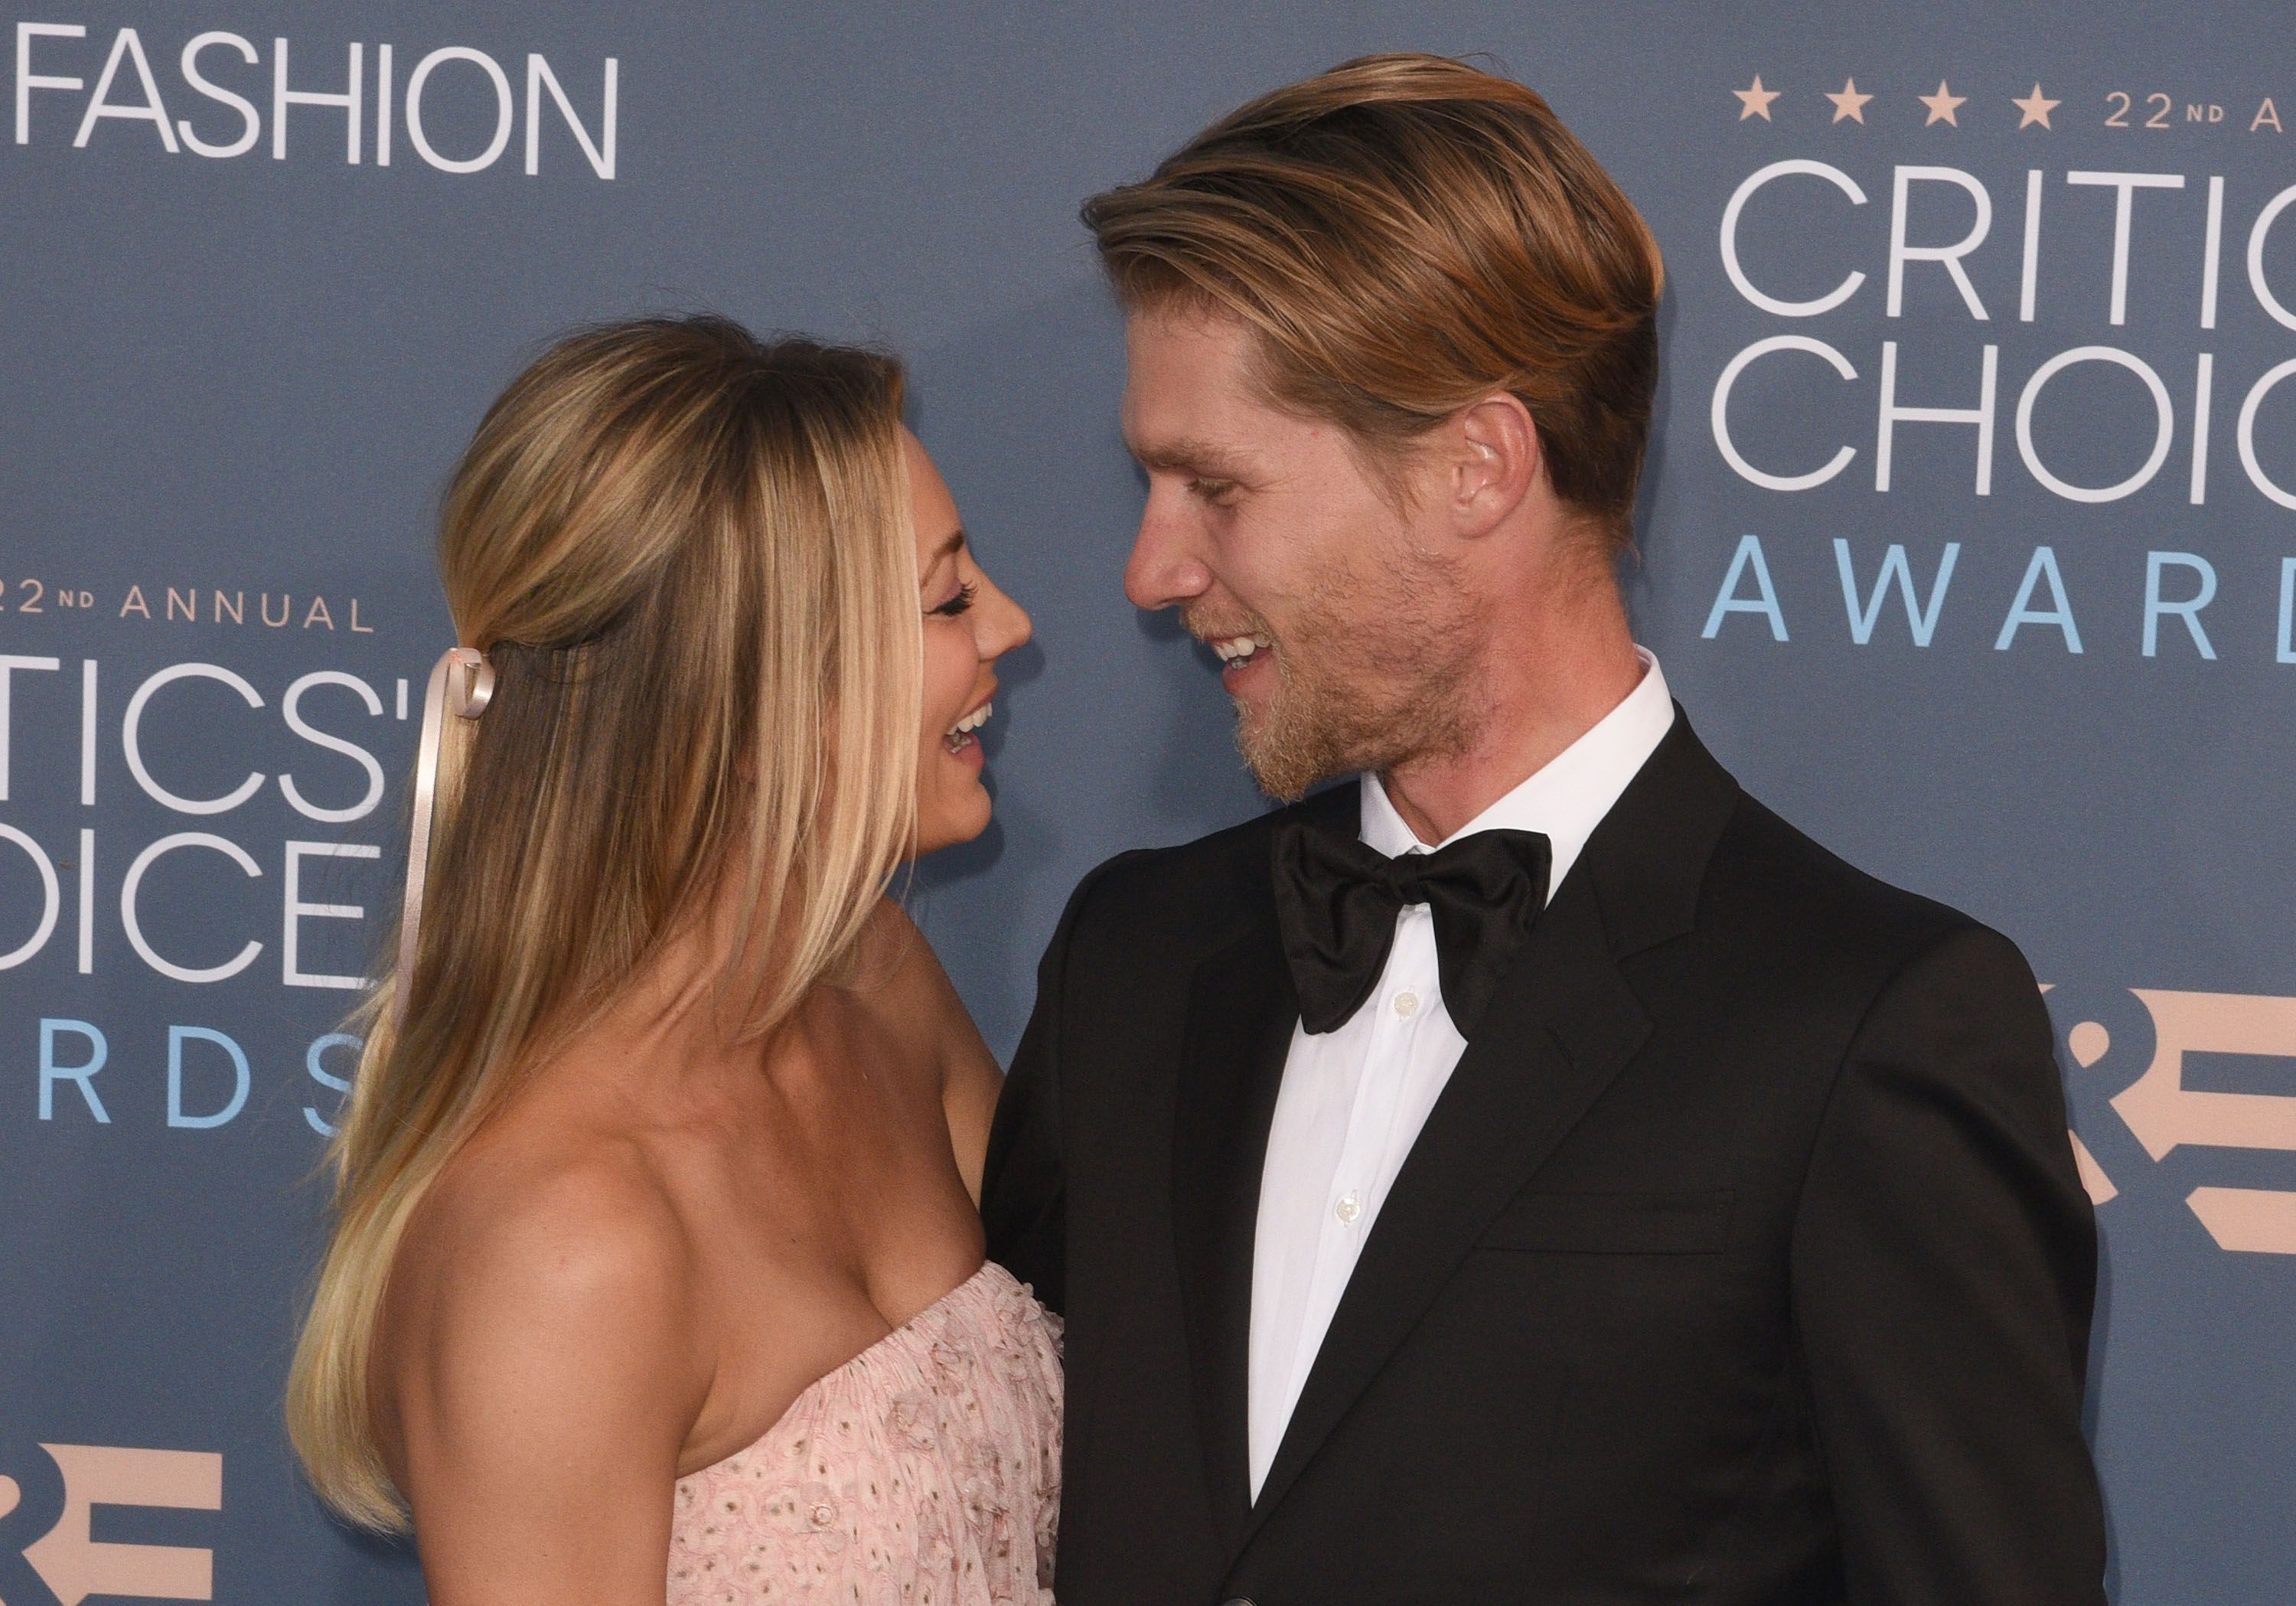 Kaley Cuoco and Karl Cook at The 22nd Annual Critics' Choice Awards at Barker Hangar in Santa Monica, California   Photo: Gregg DeGuire/WireImage via Getty Images